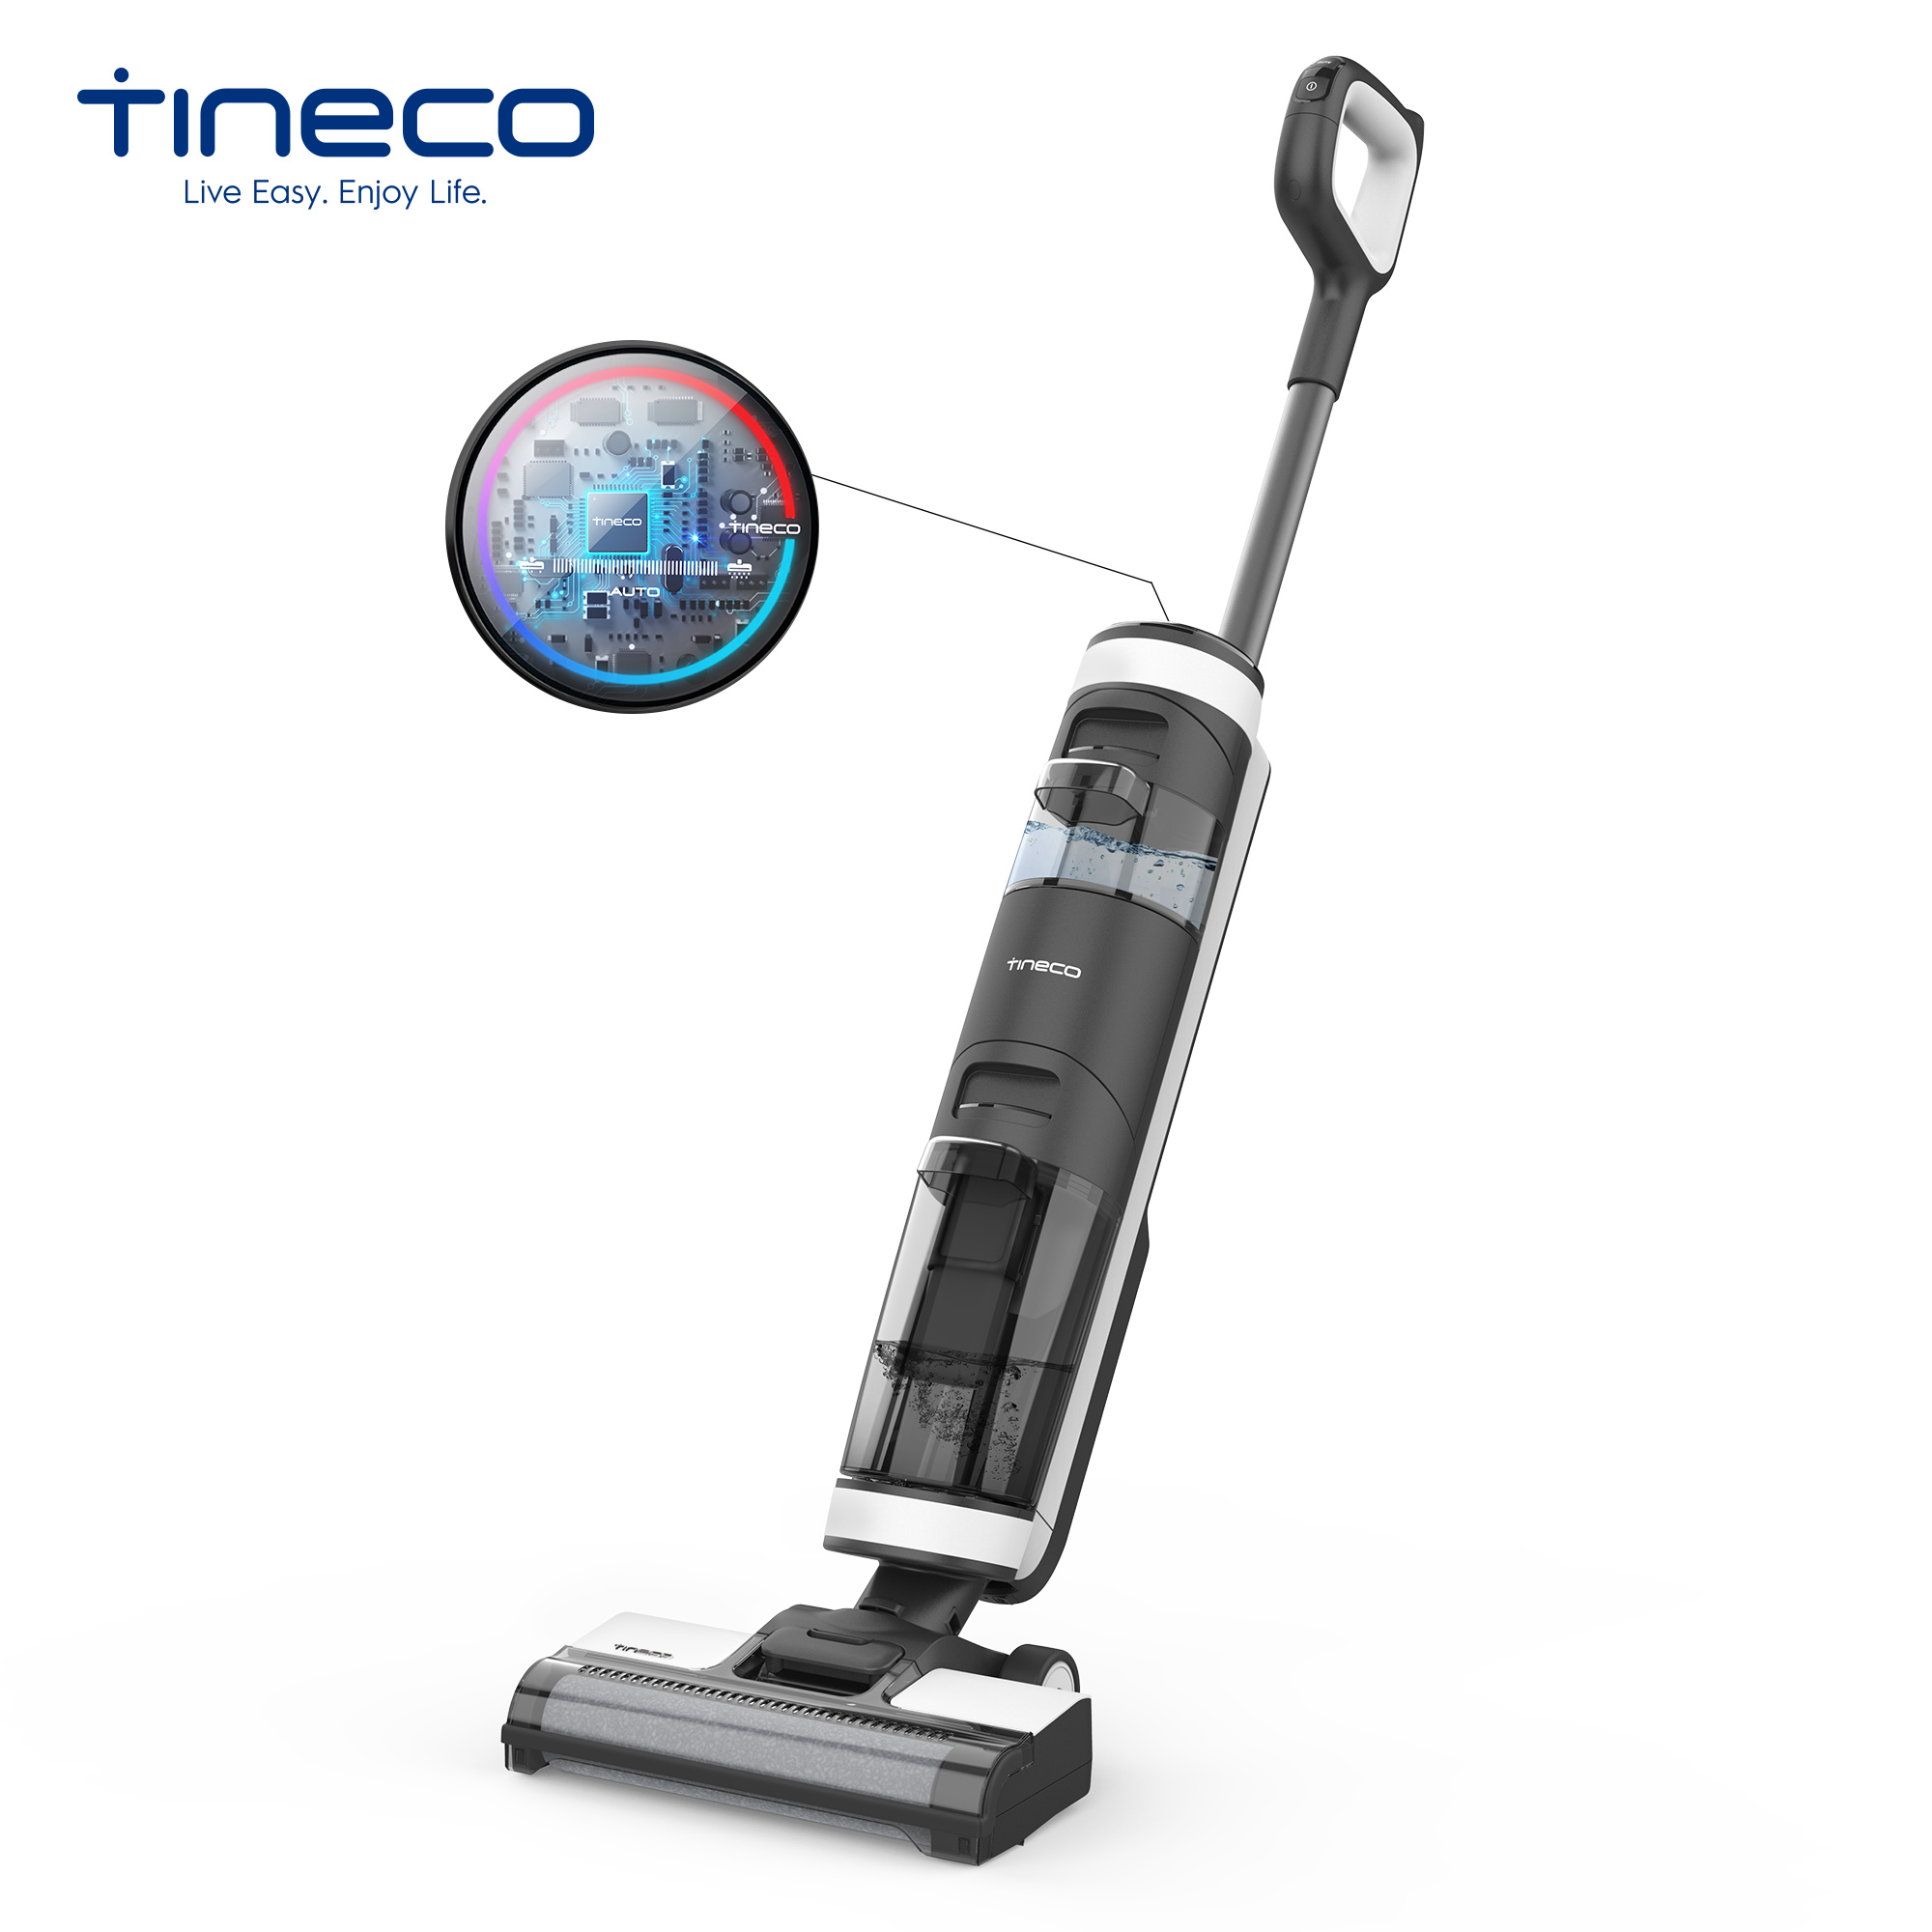 Tineco Floor One S3 Cordless Wireless Wet Dry Smart Vacuum Cleaner For Home Multi Surface Cleaning Handheld Household APP LED